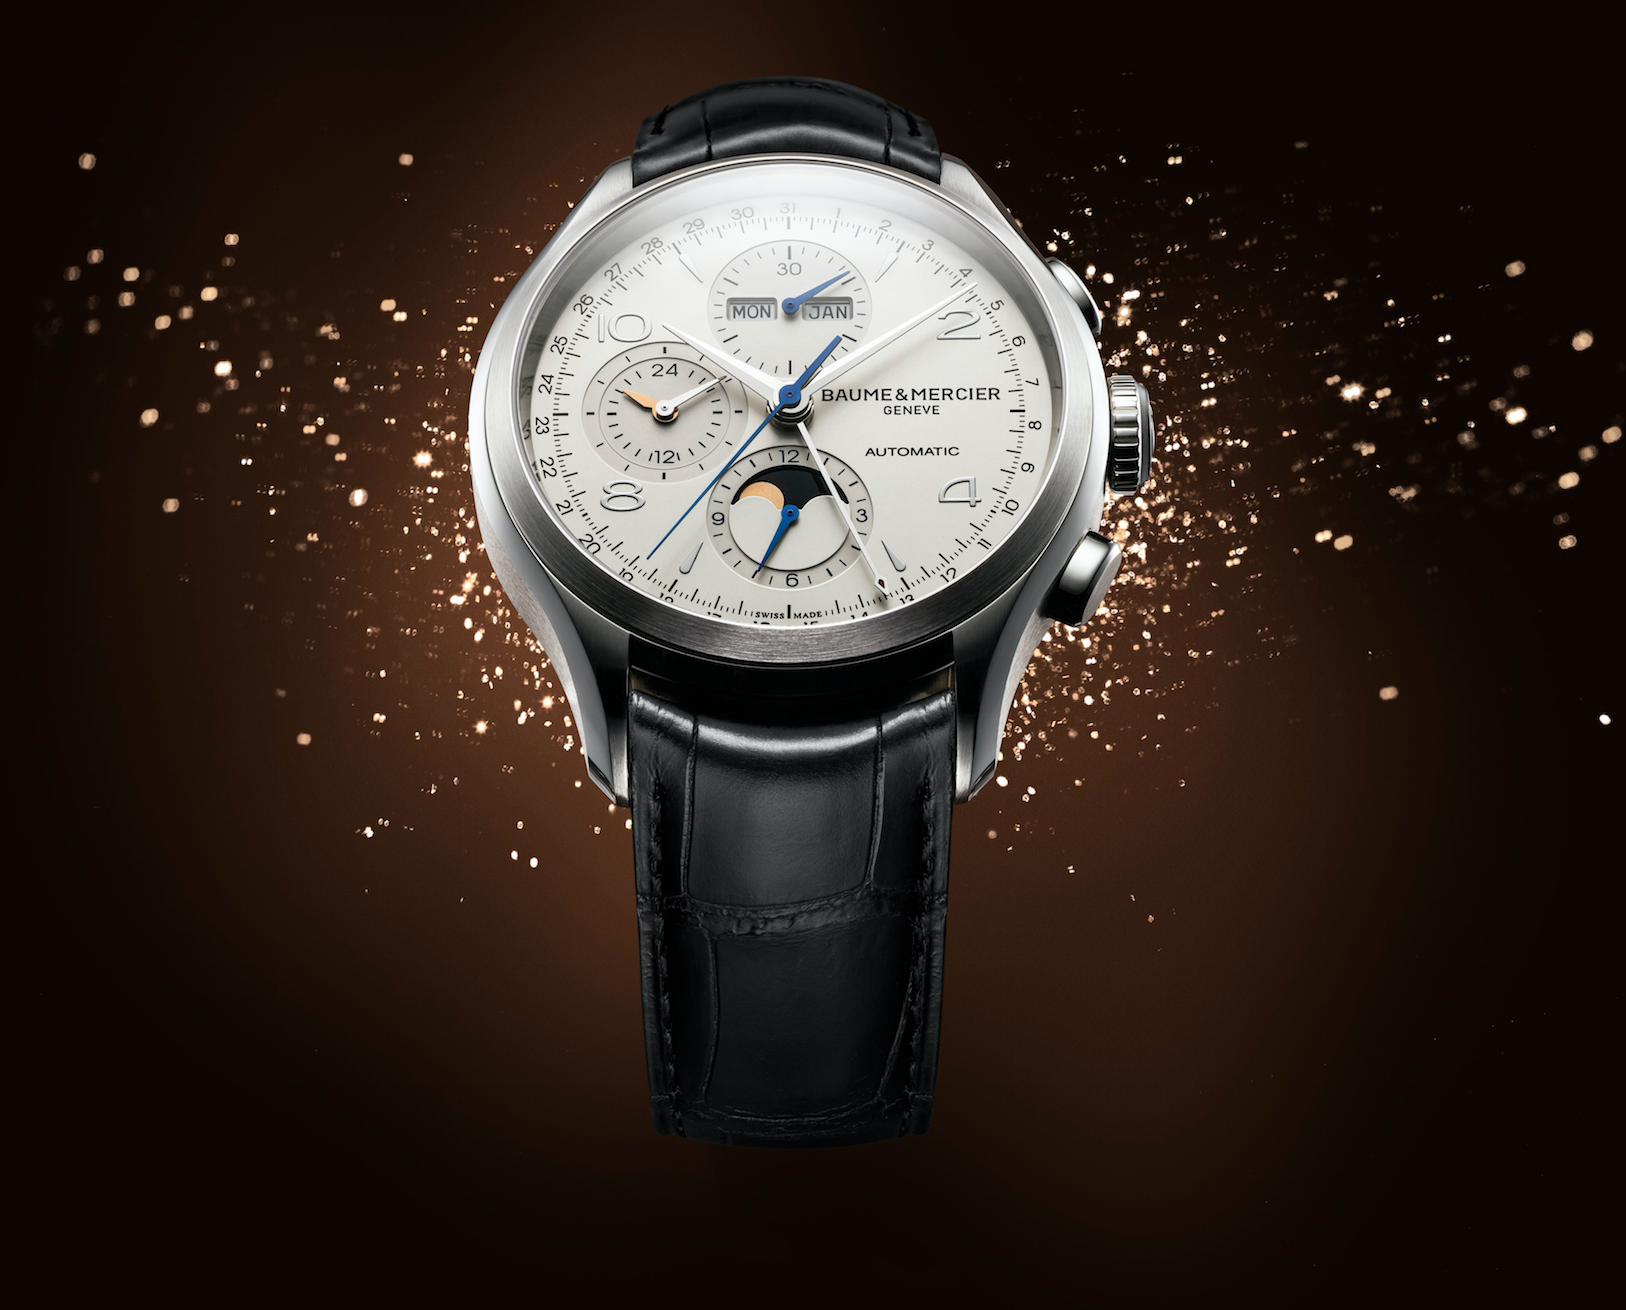 Baume et Mercier Clifton Chronograph Calendario Perpetuo